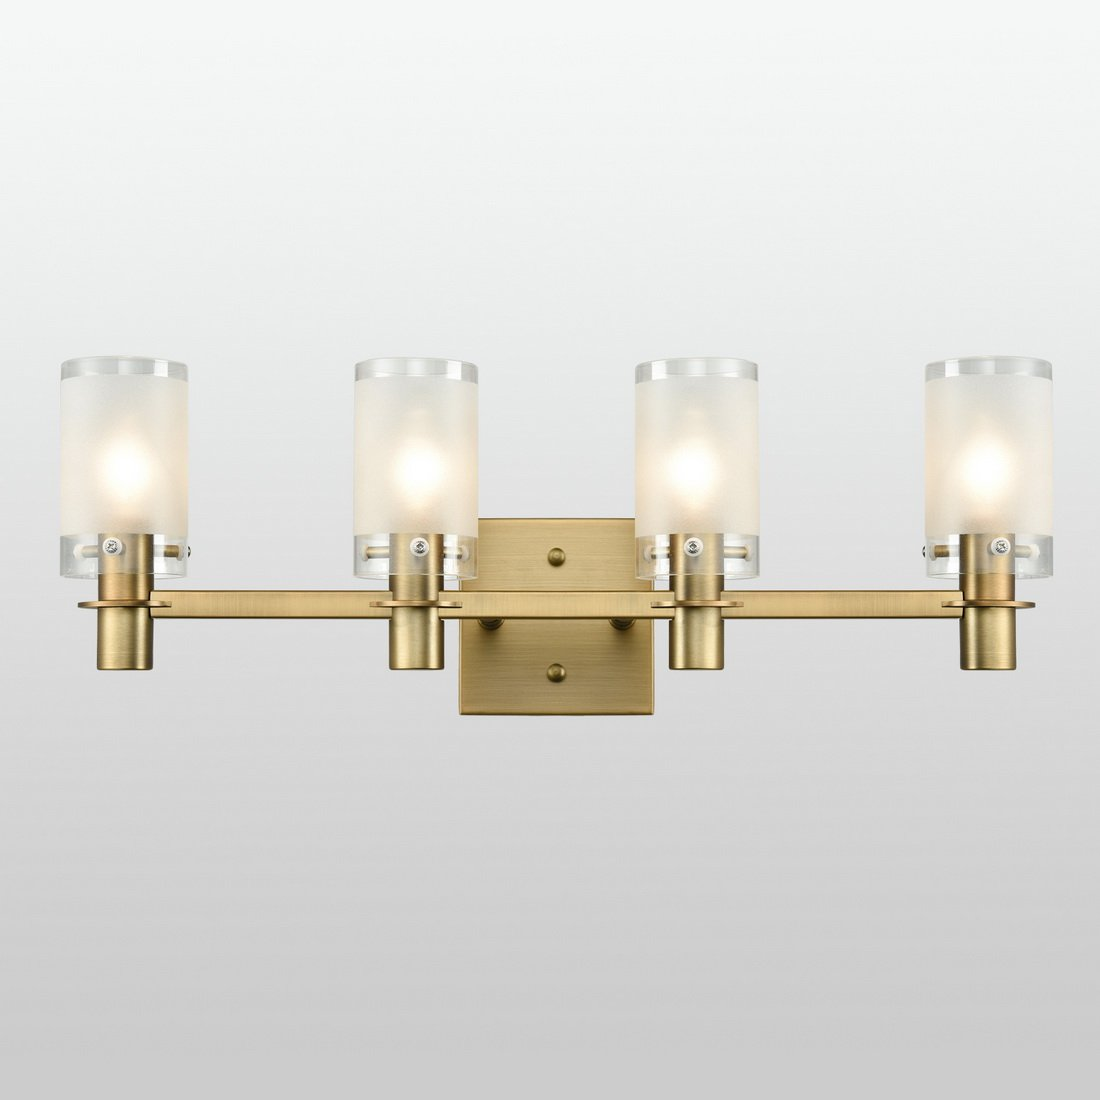 AXILAND Gold Plating Bath Vanity Light Wall Sconce Fixture with Frosted Glass Shade